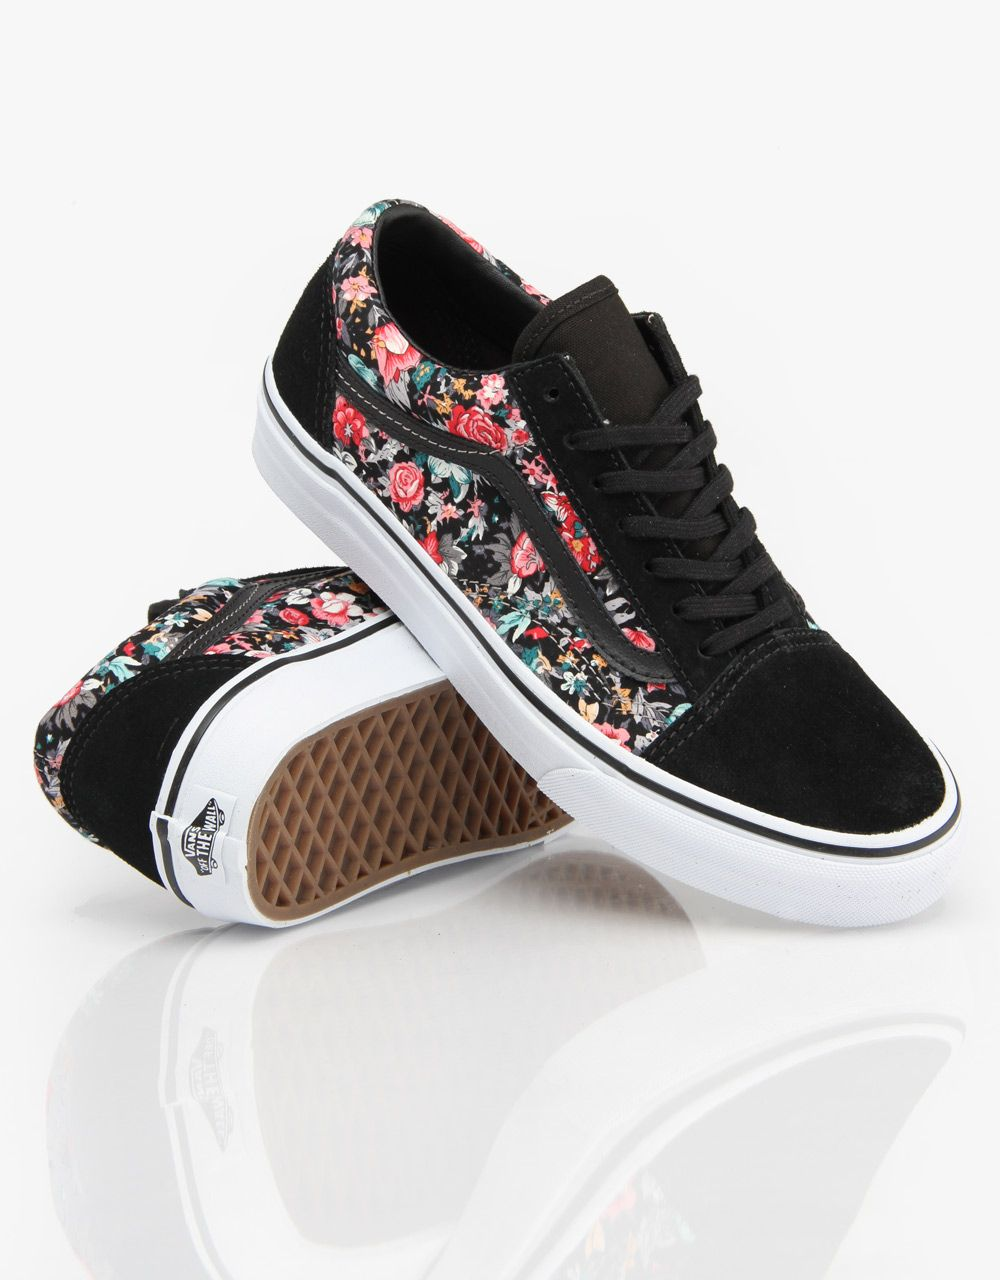 e5bbd1eb924 Vans Old Skool Girls Skate Shoes - Multi Floral Black True White -  RouteOne.co.uk